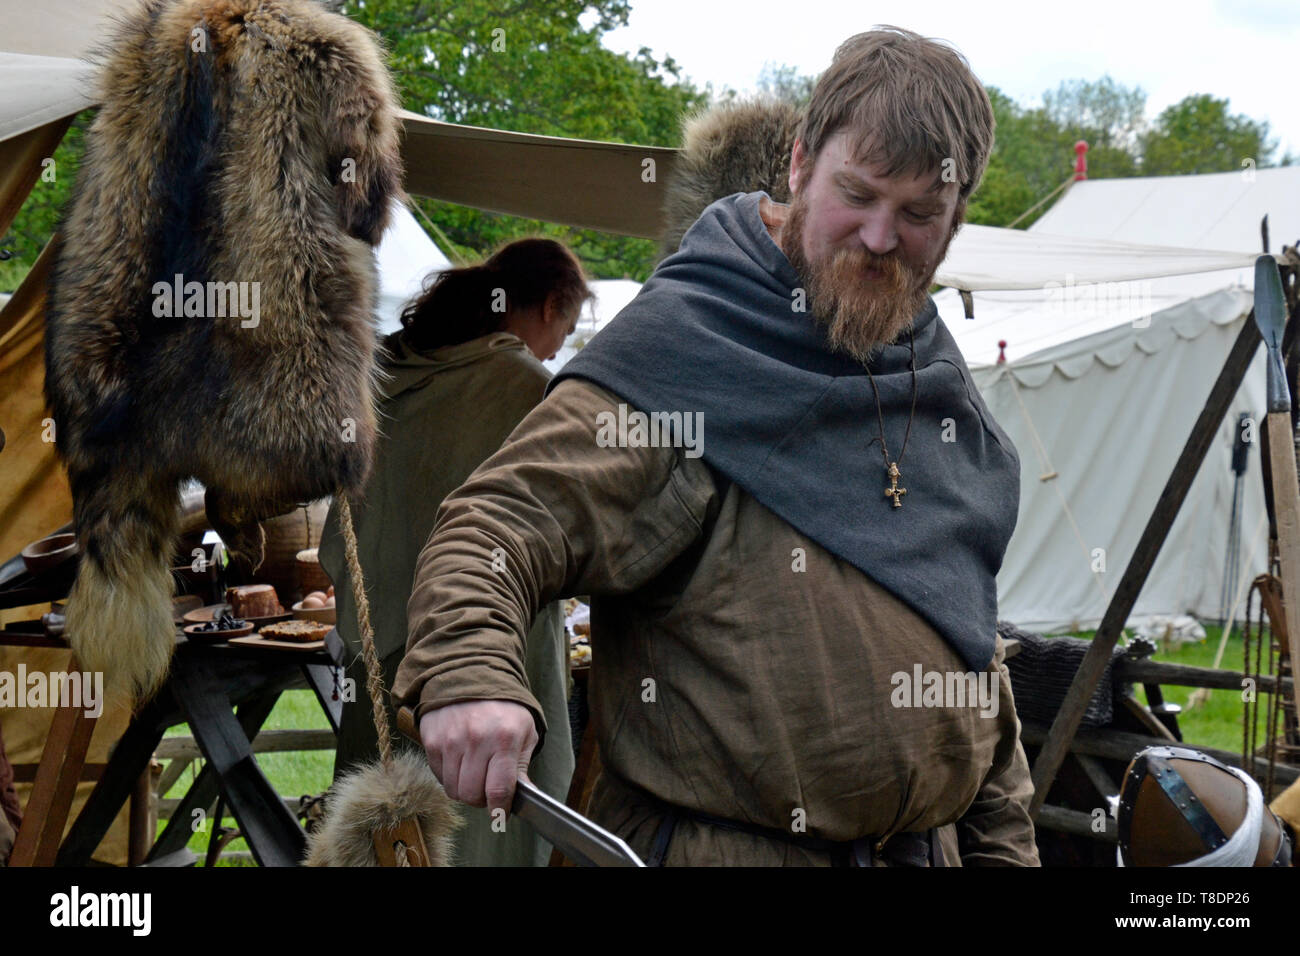 Viking settlement at the Milton Keynes Museum History Festival 2019. Wolverton, Buckinghamshire, England, UK - Stock Image